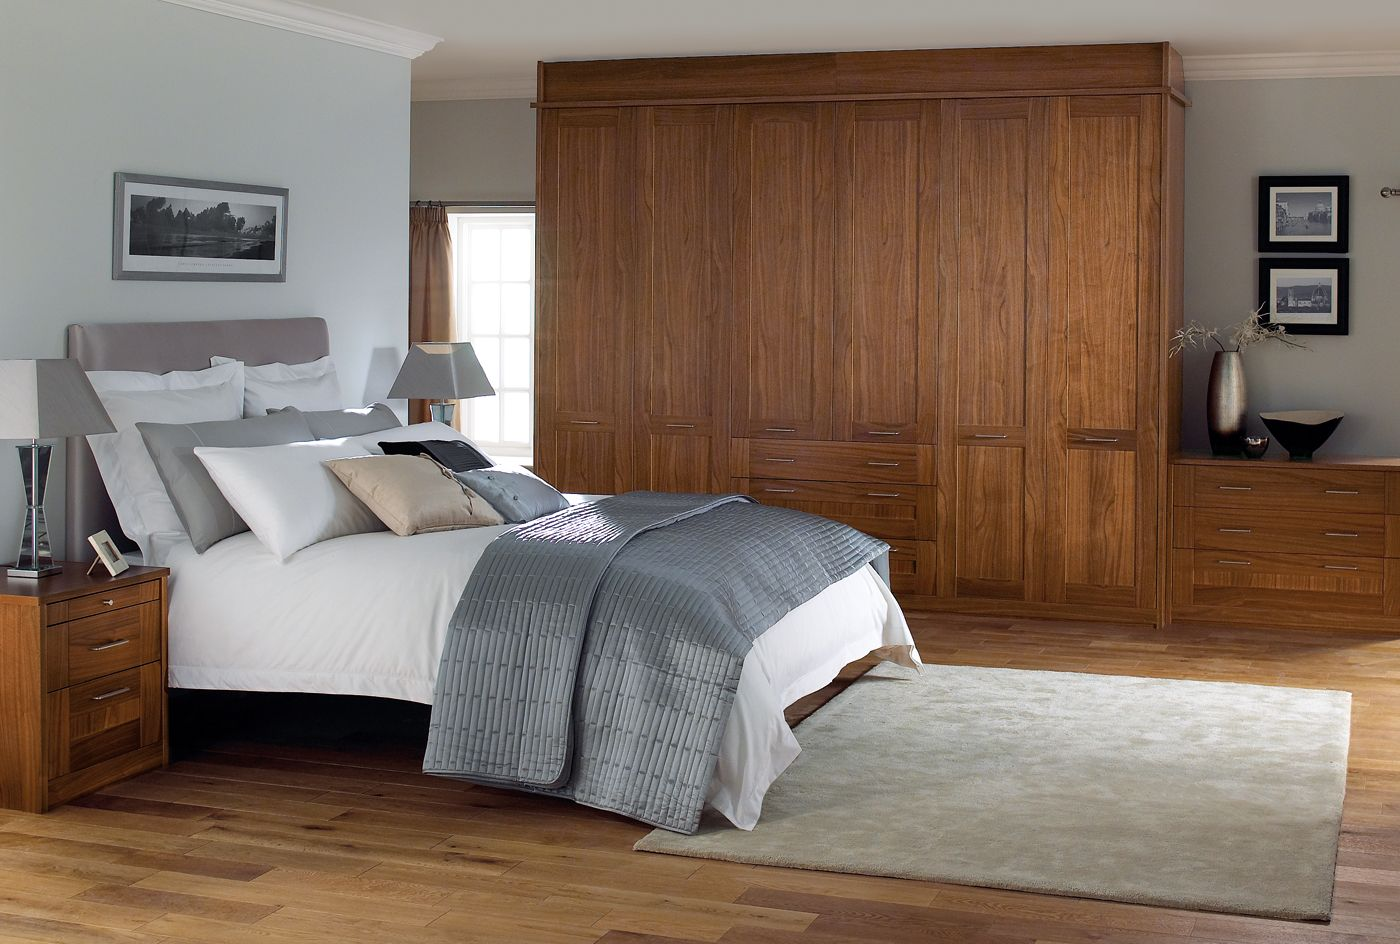 A complete bedroom from the Modena bedroom furniture range by Sharps ...